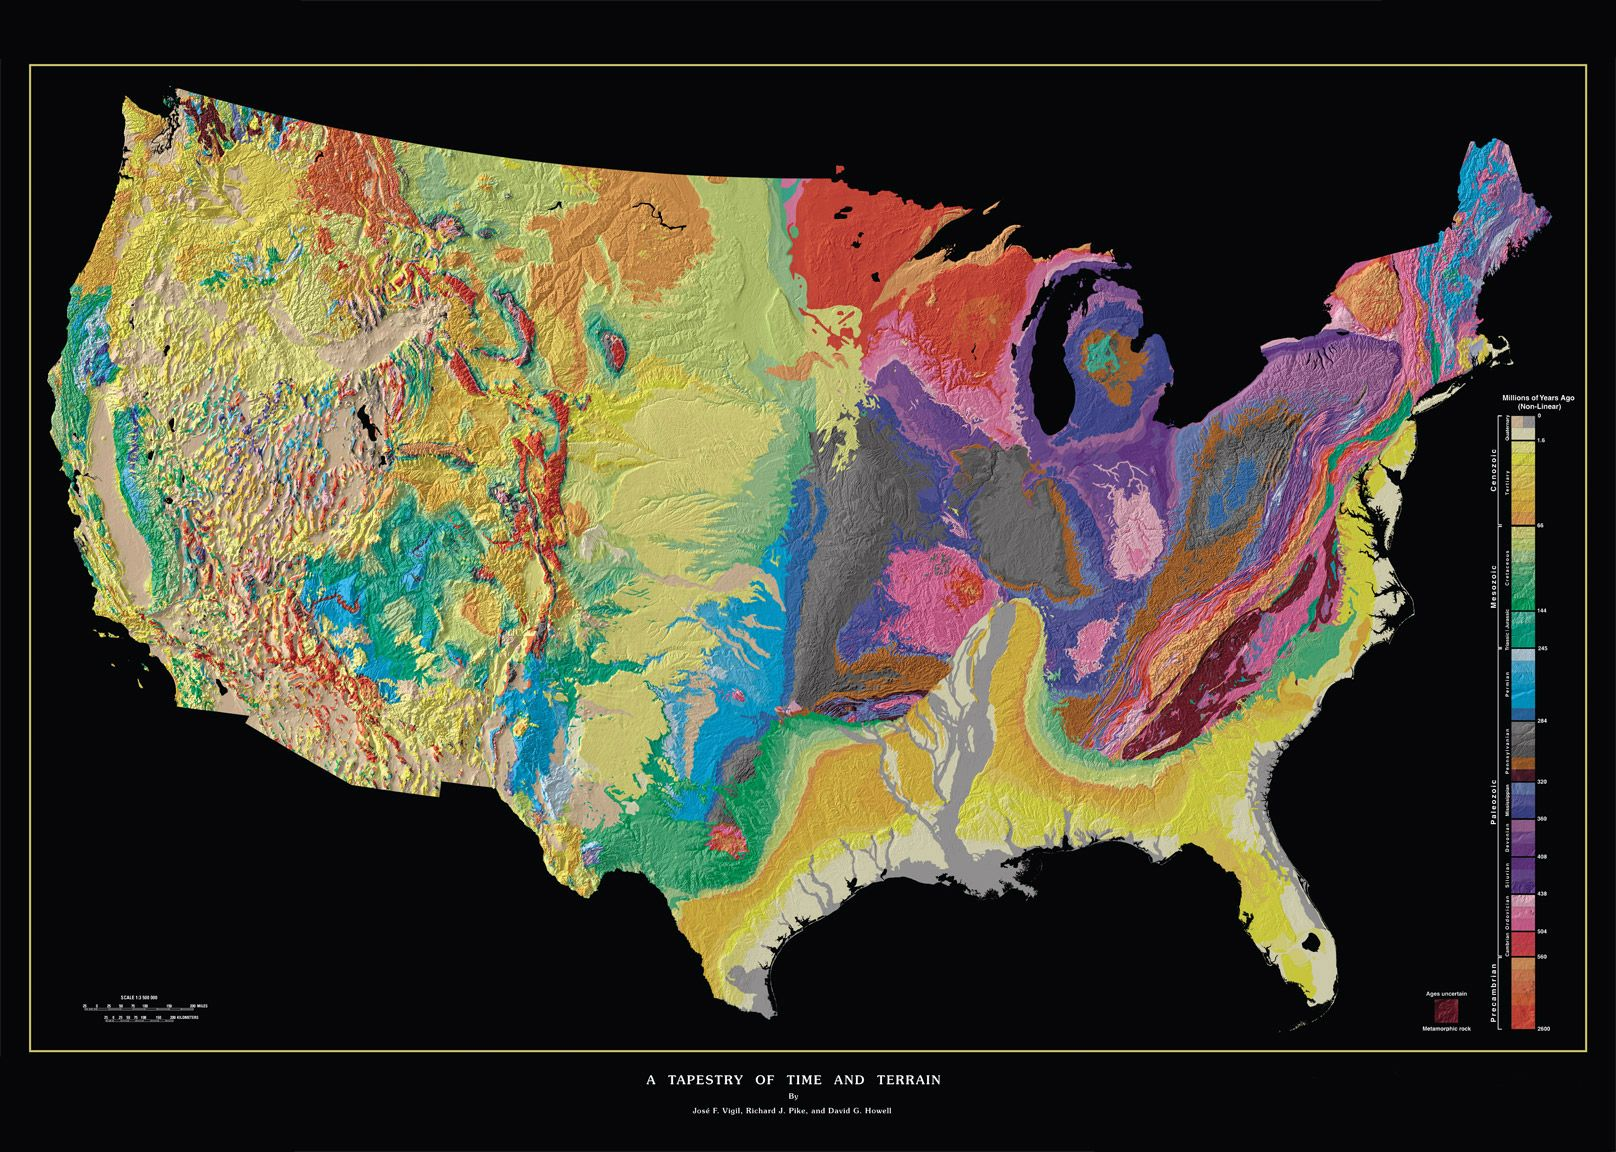 USGS geologic map of the continental U